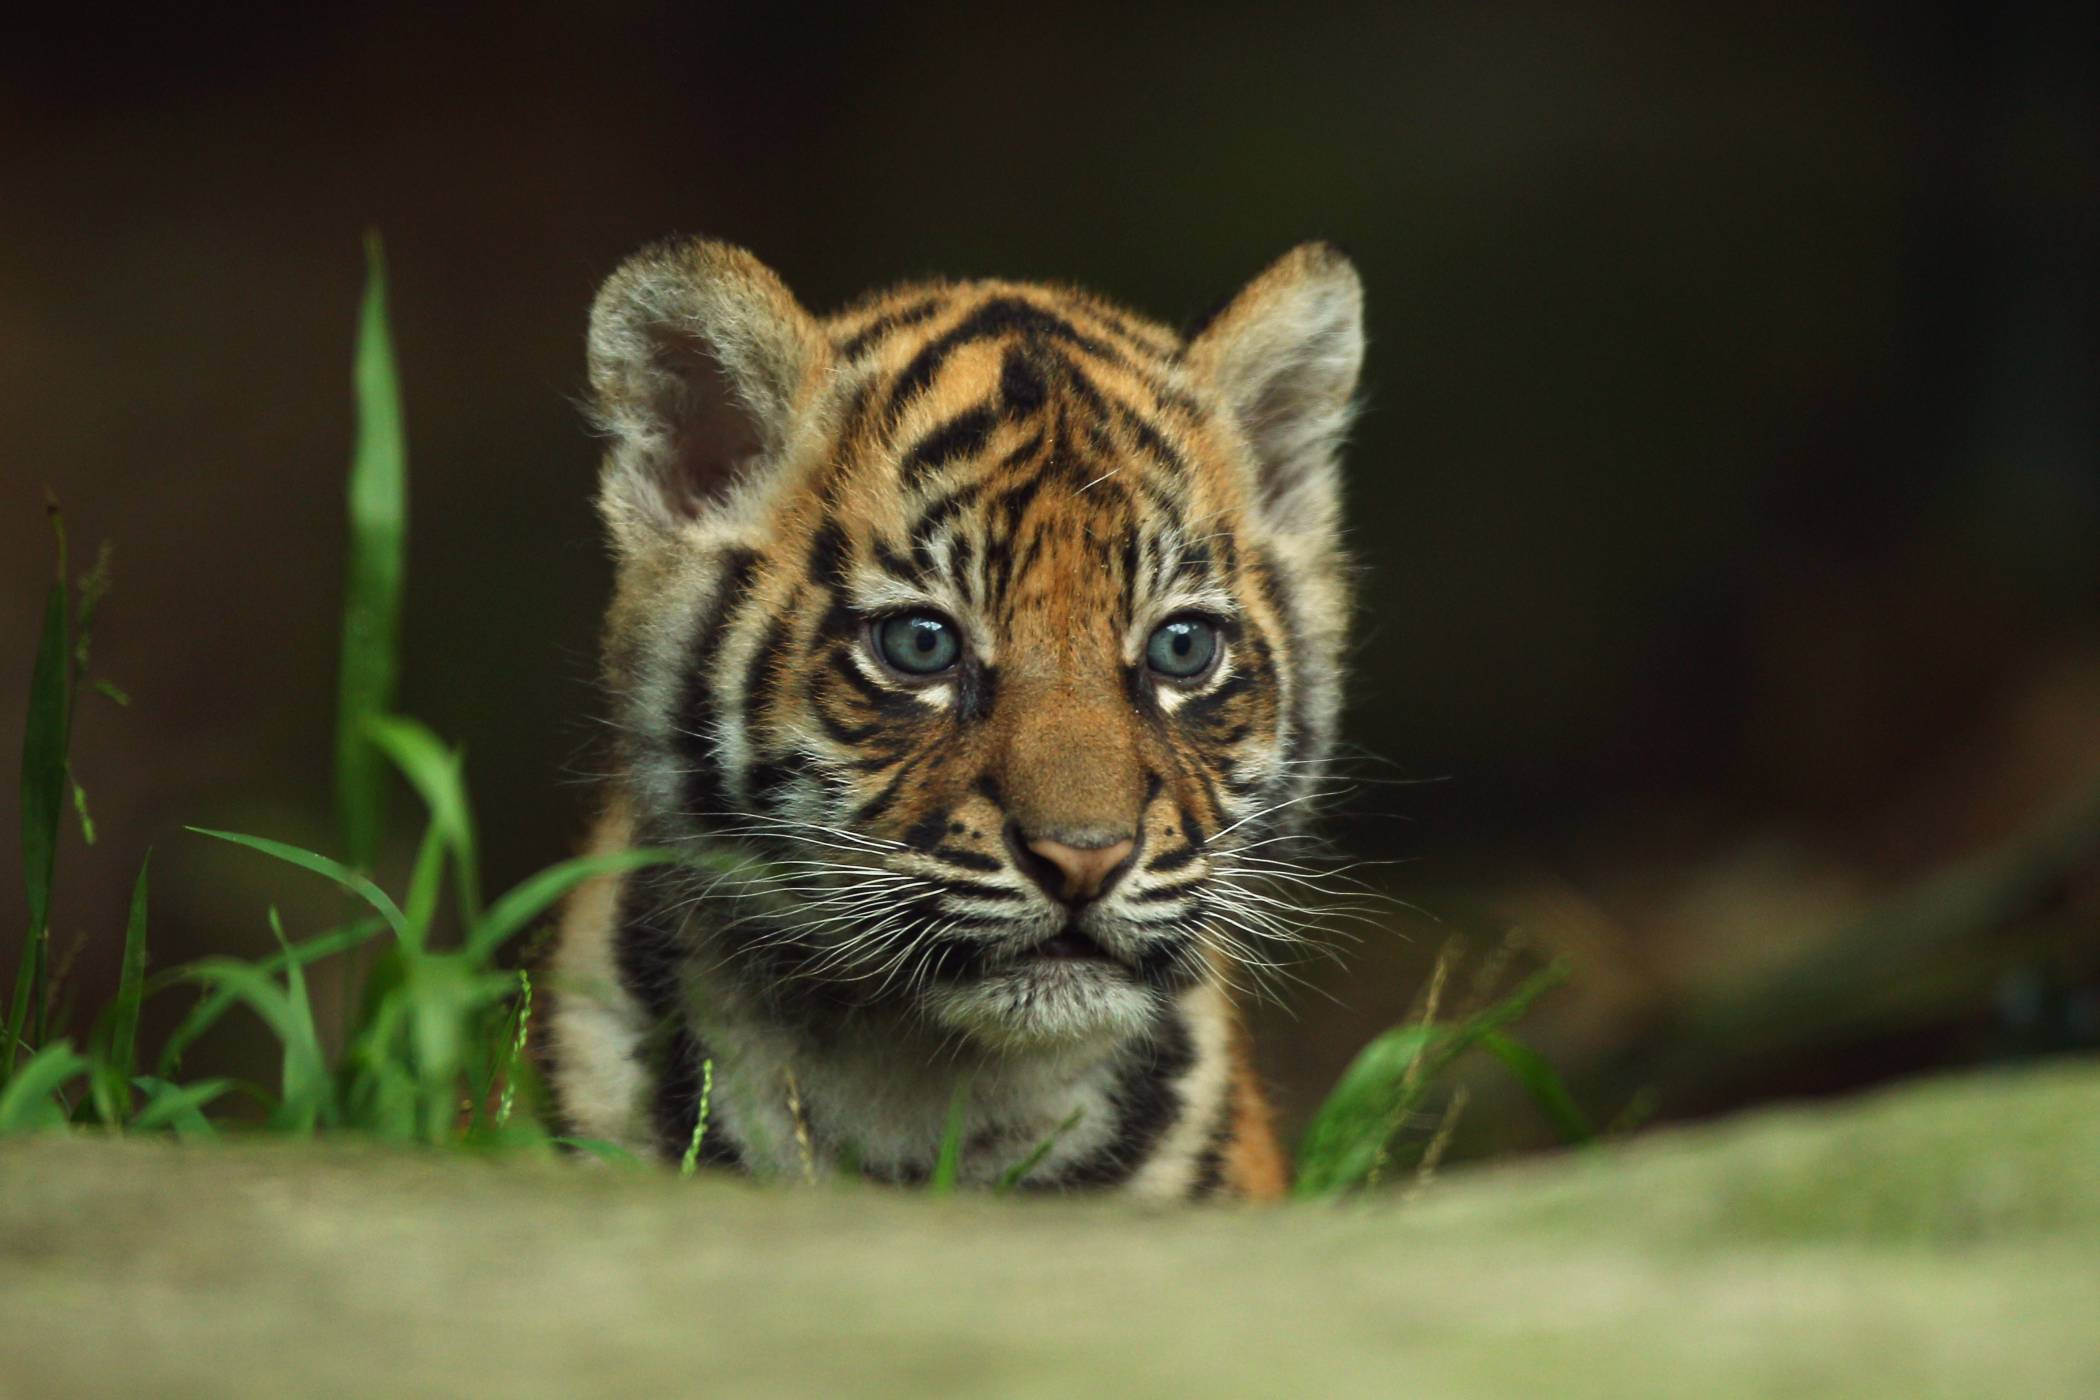 baby tiger pictures 30503 2100x1400 px ~ hdwallsource